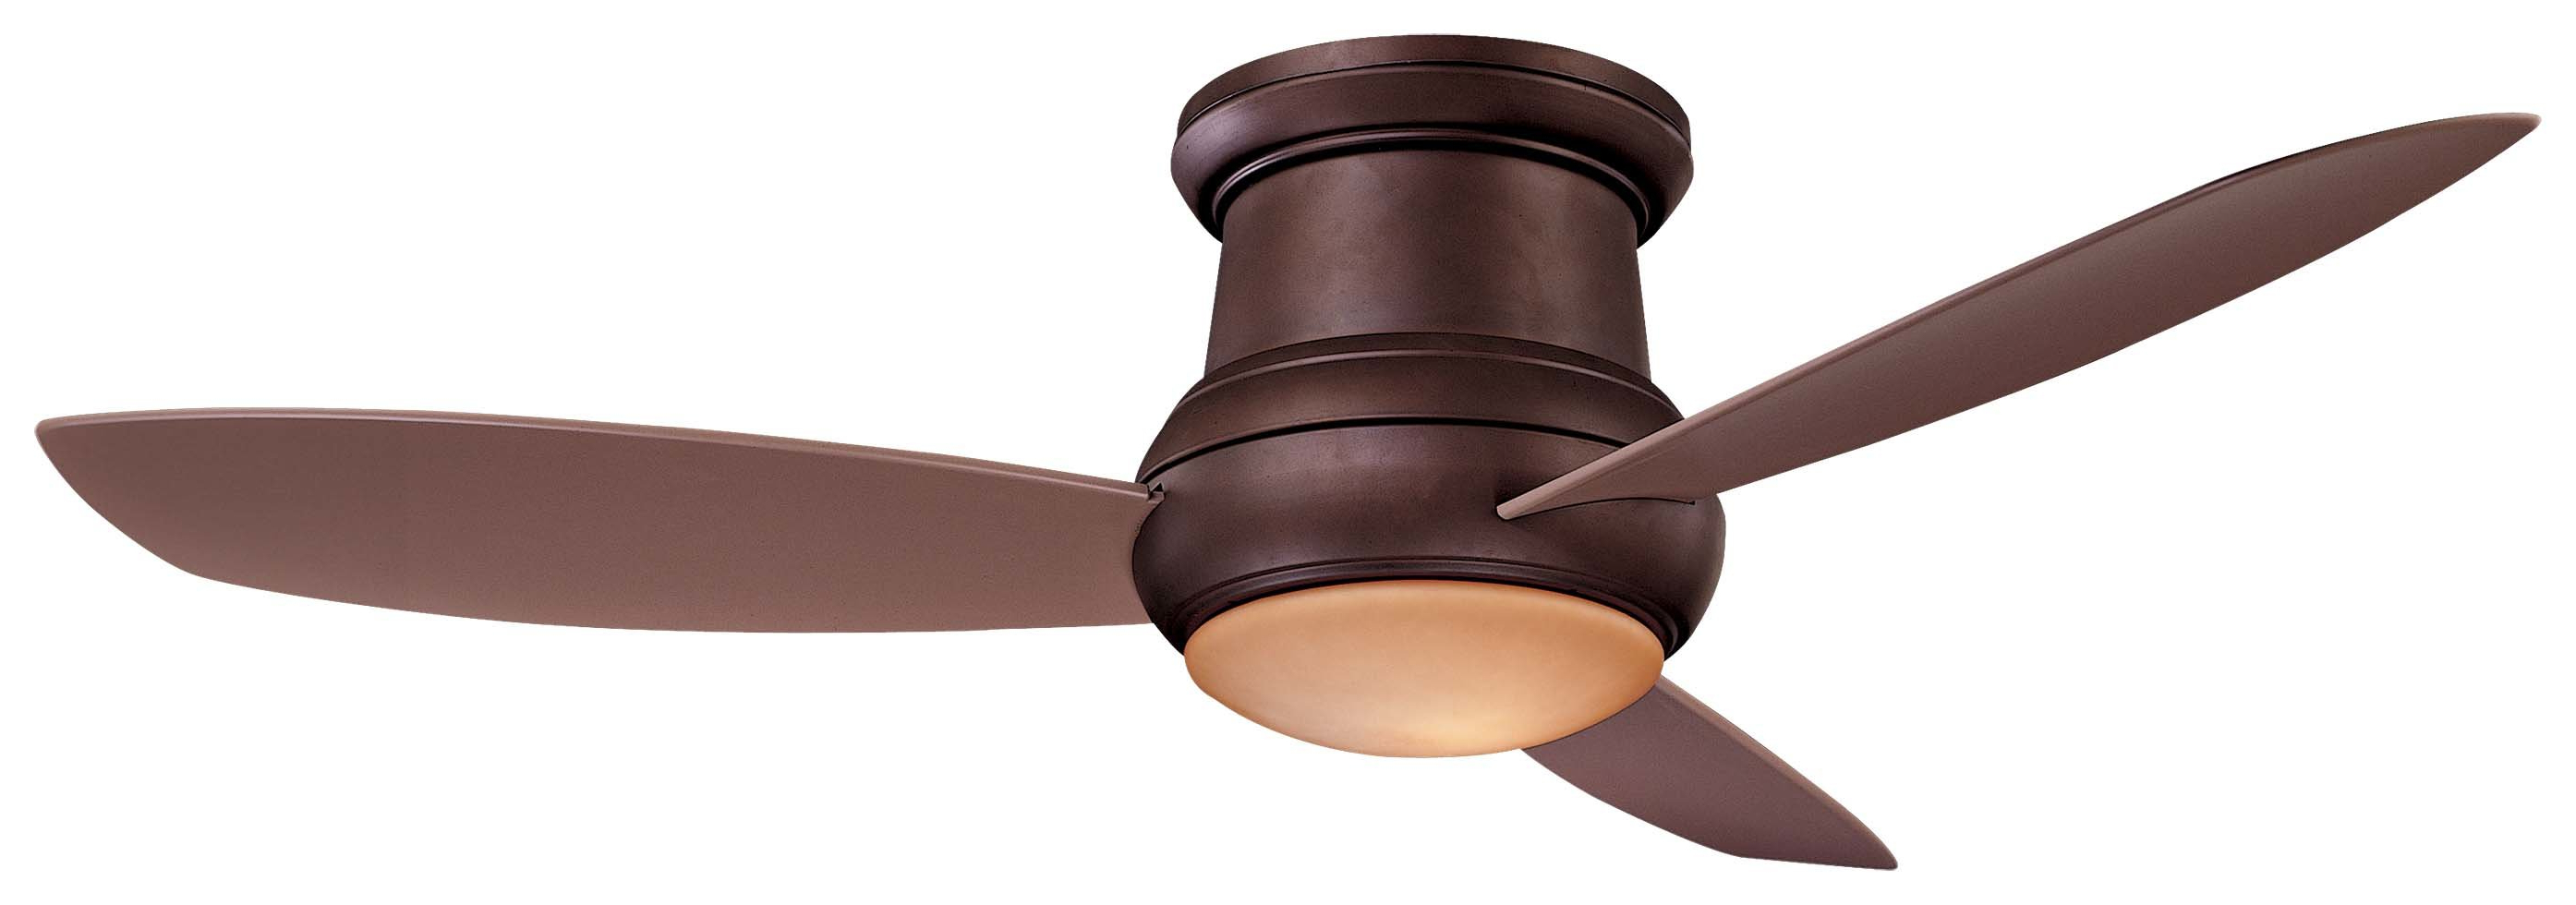 "52"" Concept Ii 3 Blade Outdoor Led Ceiling Fan For Trendy Concept 3 Blade Led Ceiling Fans (View 4 of 20)"